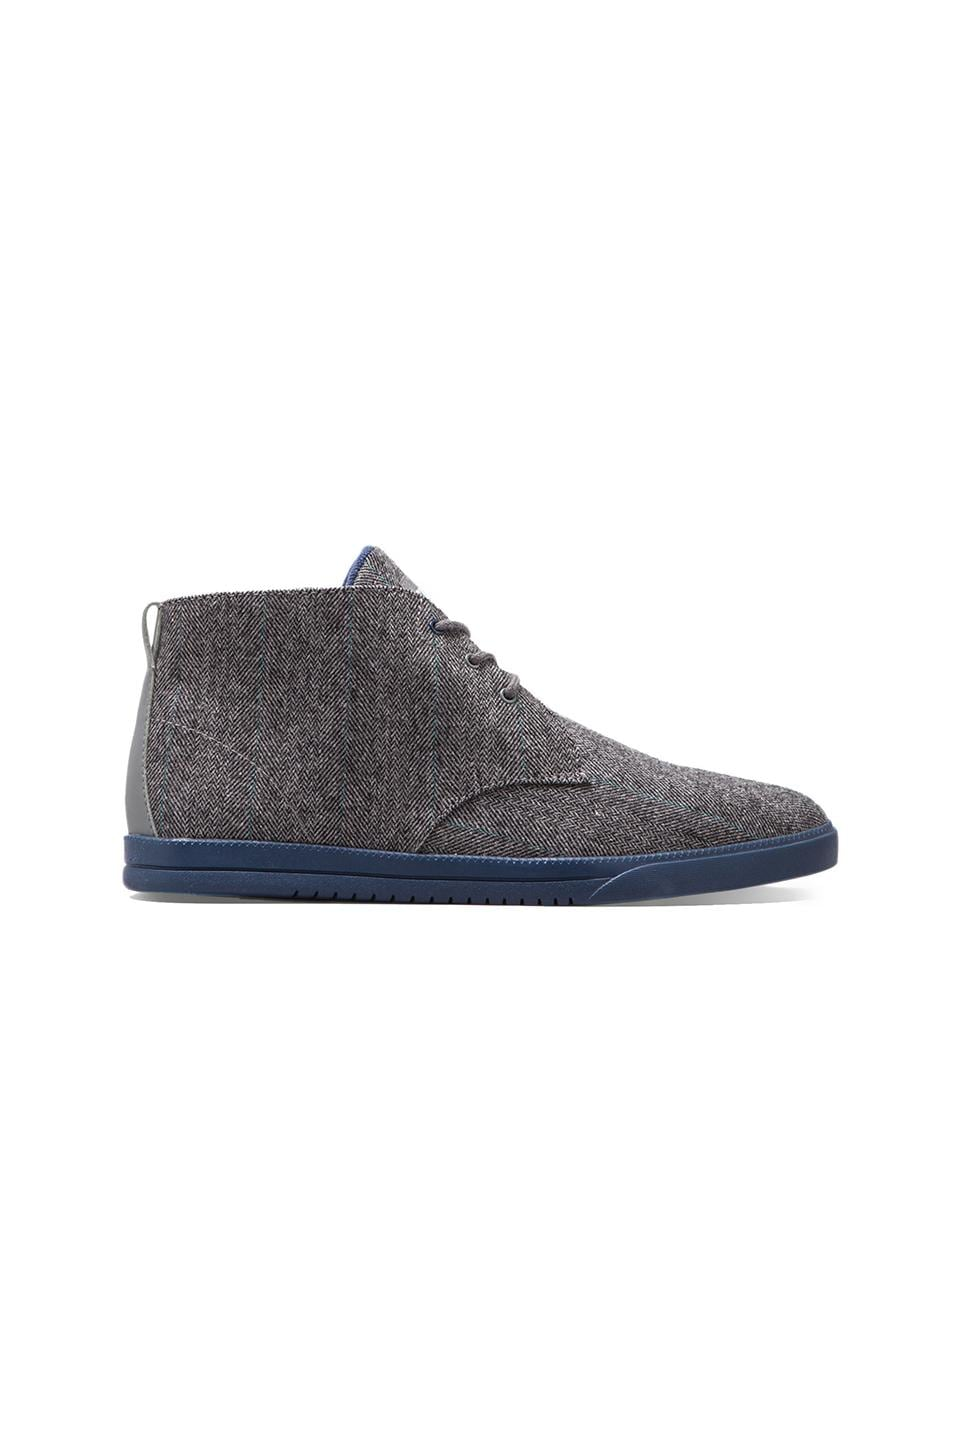 Clae Strayhorn Textile en Charcoal Wool Midnight